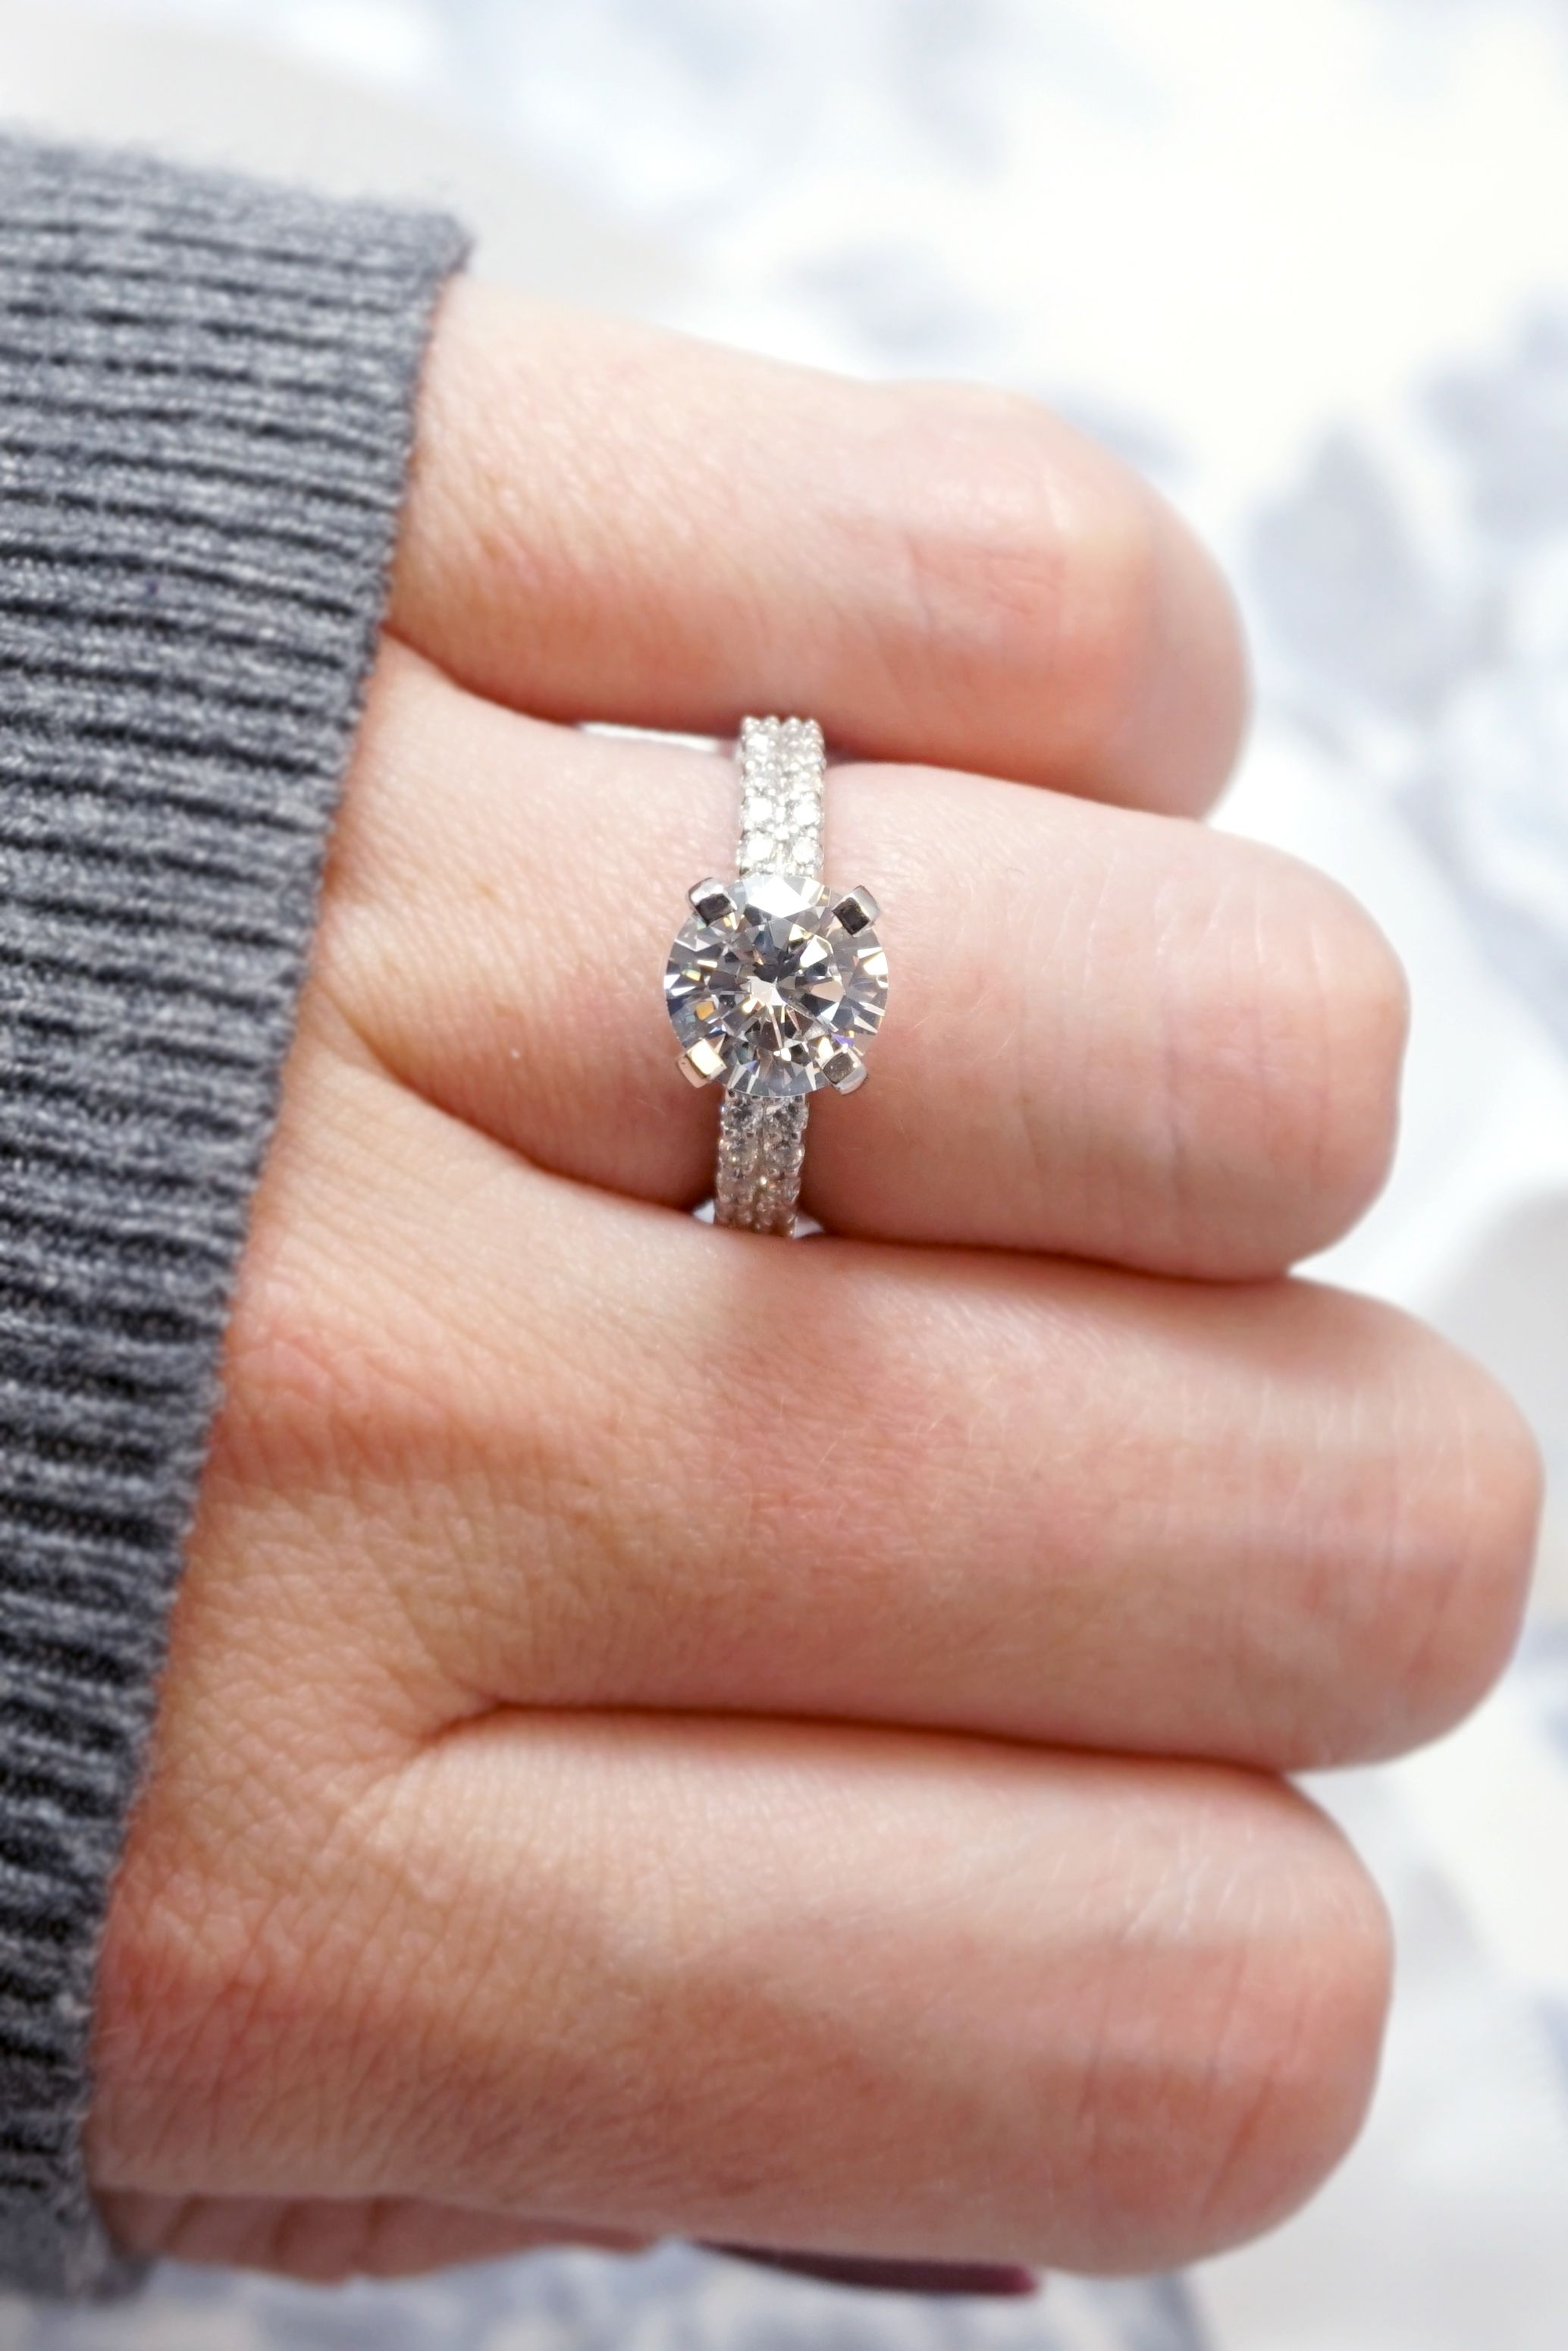 product heart ronglee crown dhgate style new com diamond from rings s fashion women ring